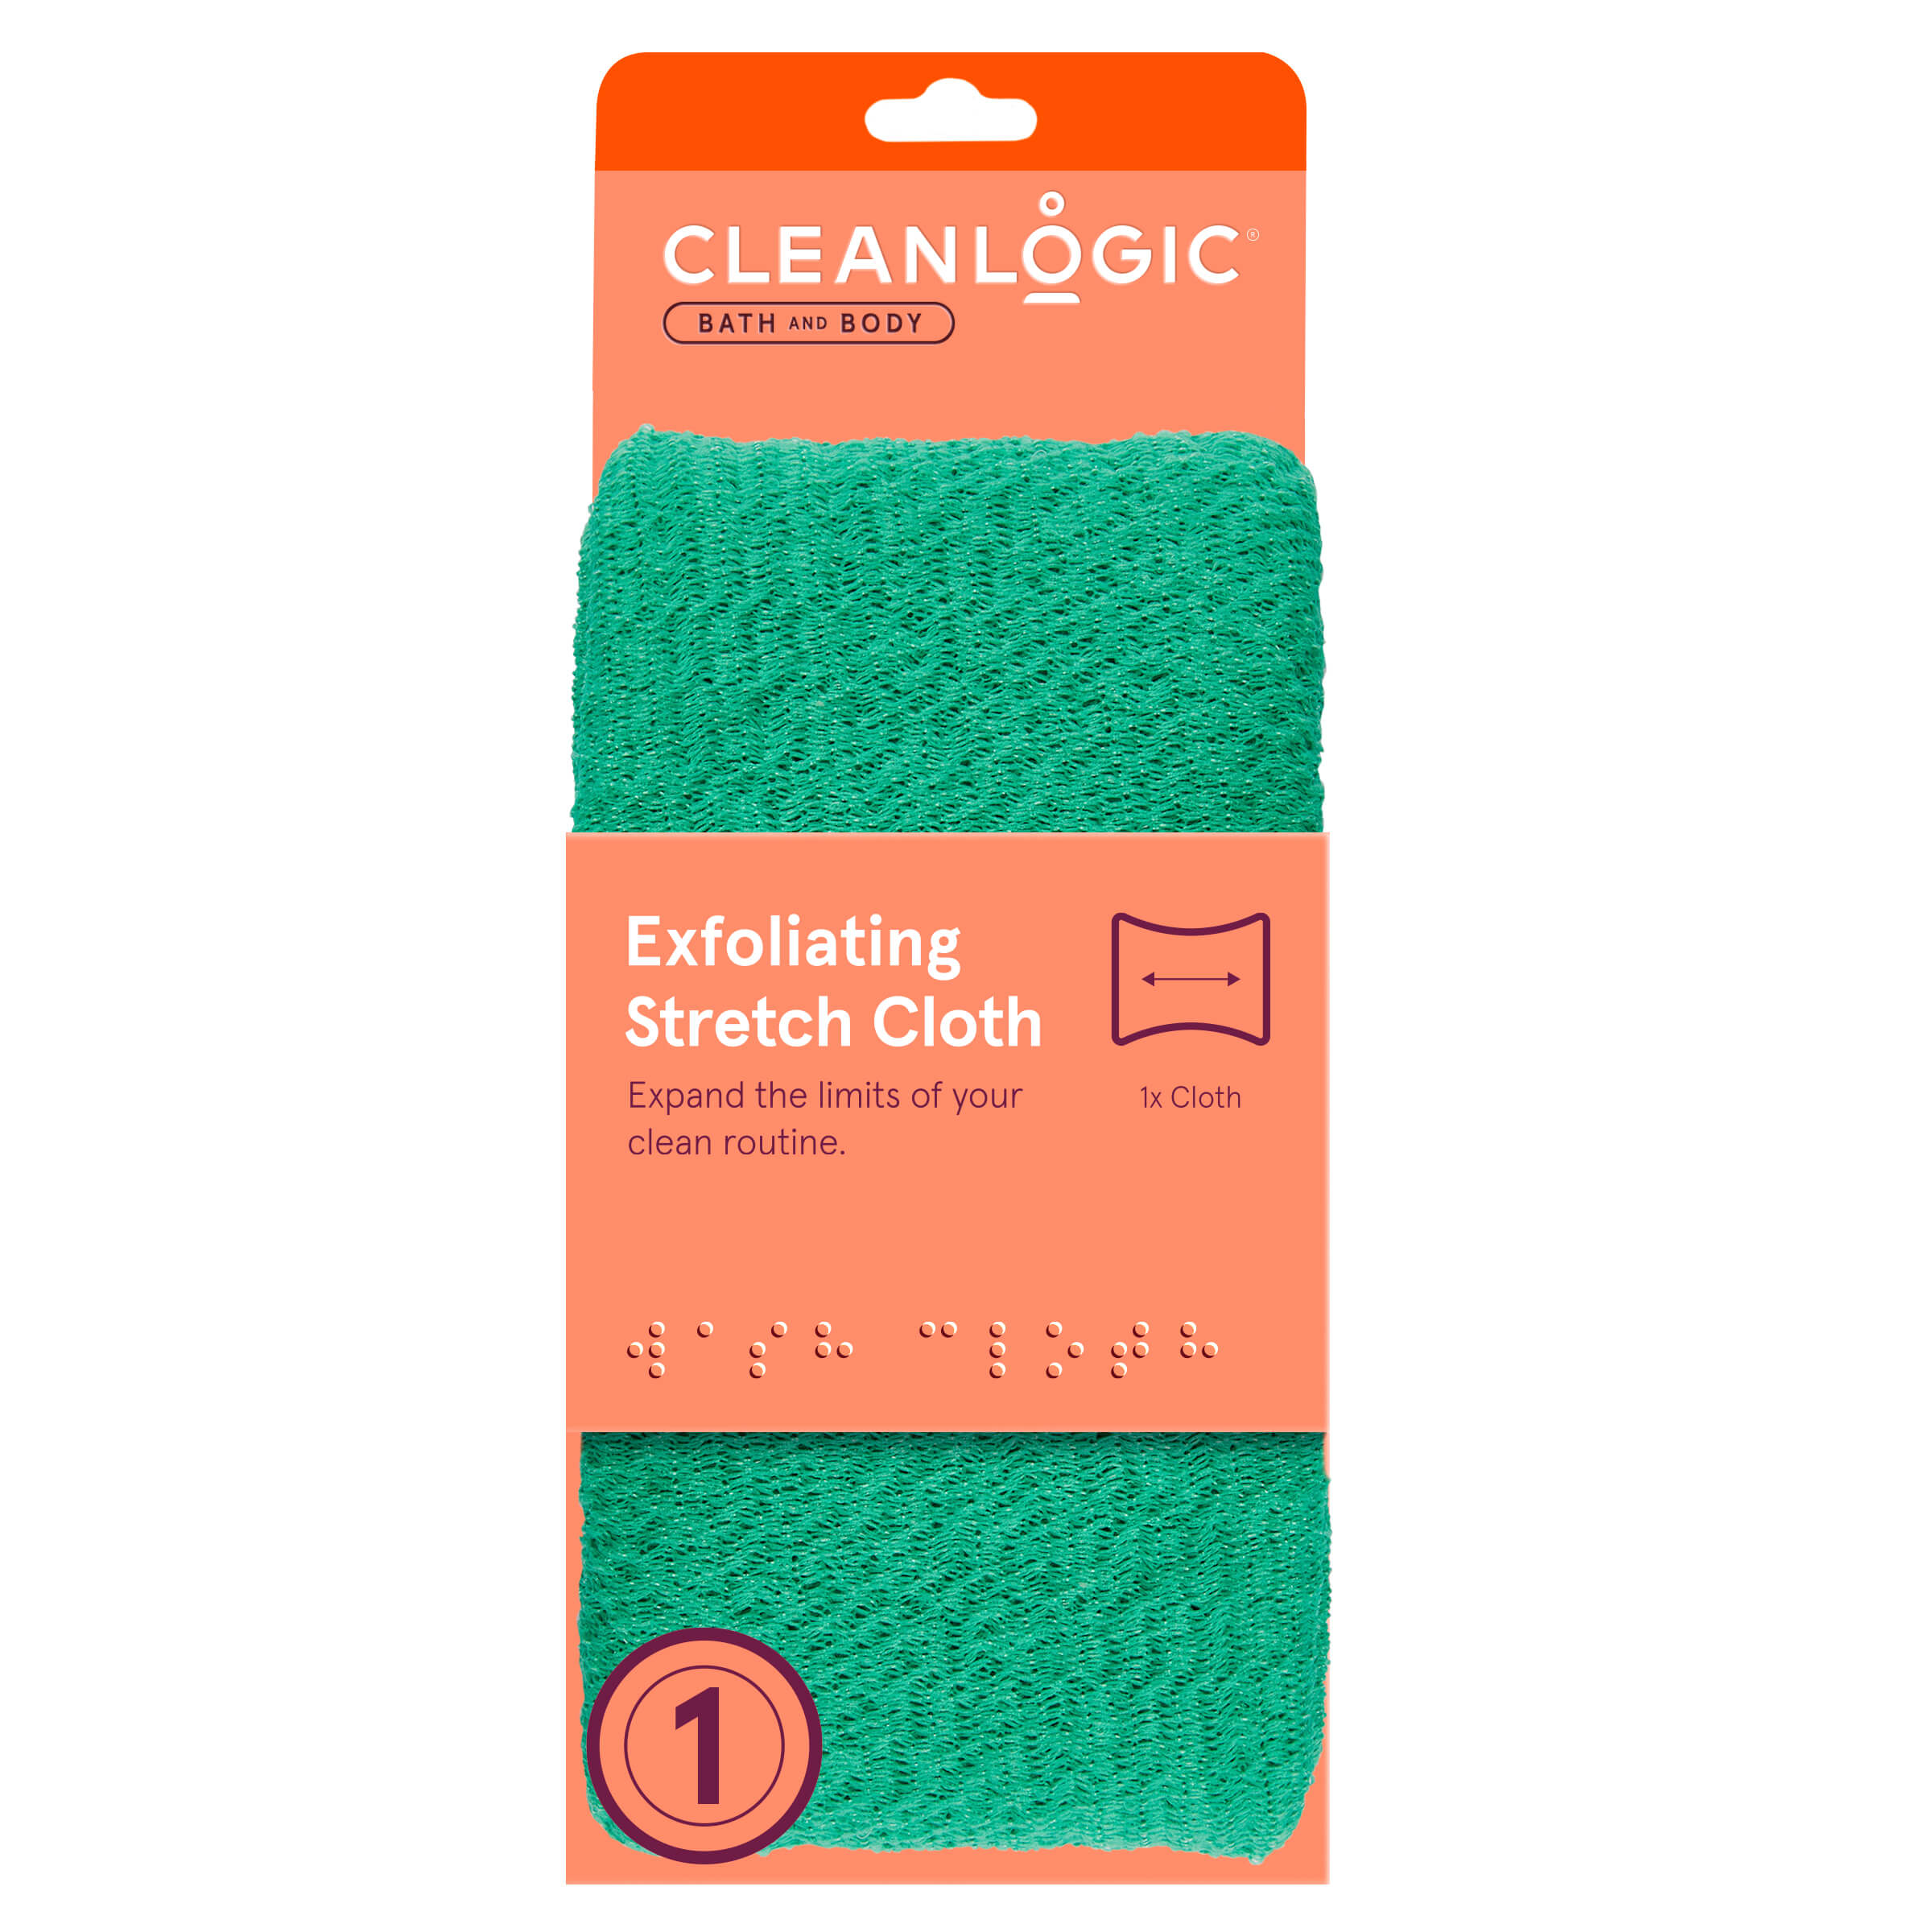 Cleanlogic Bath and Body Exfoliating Stretch Cloth